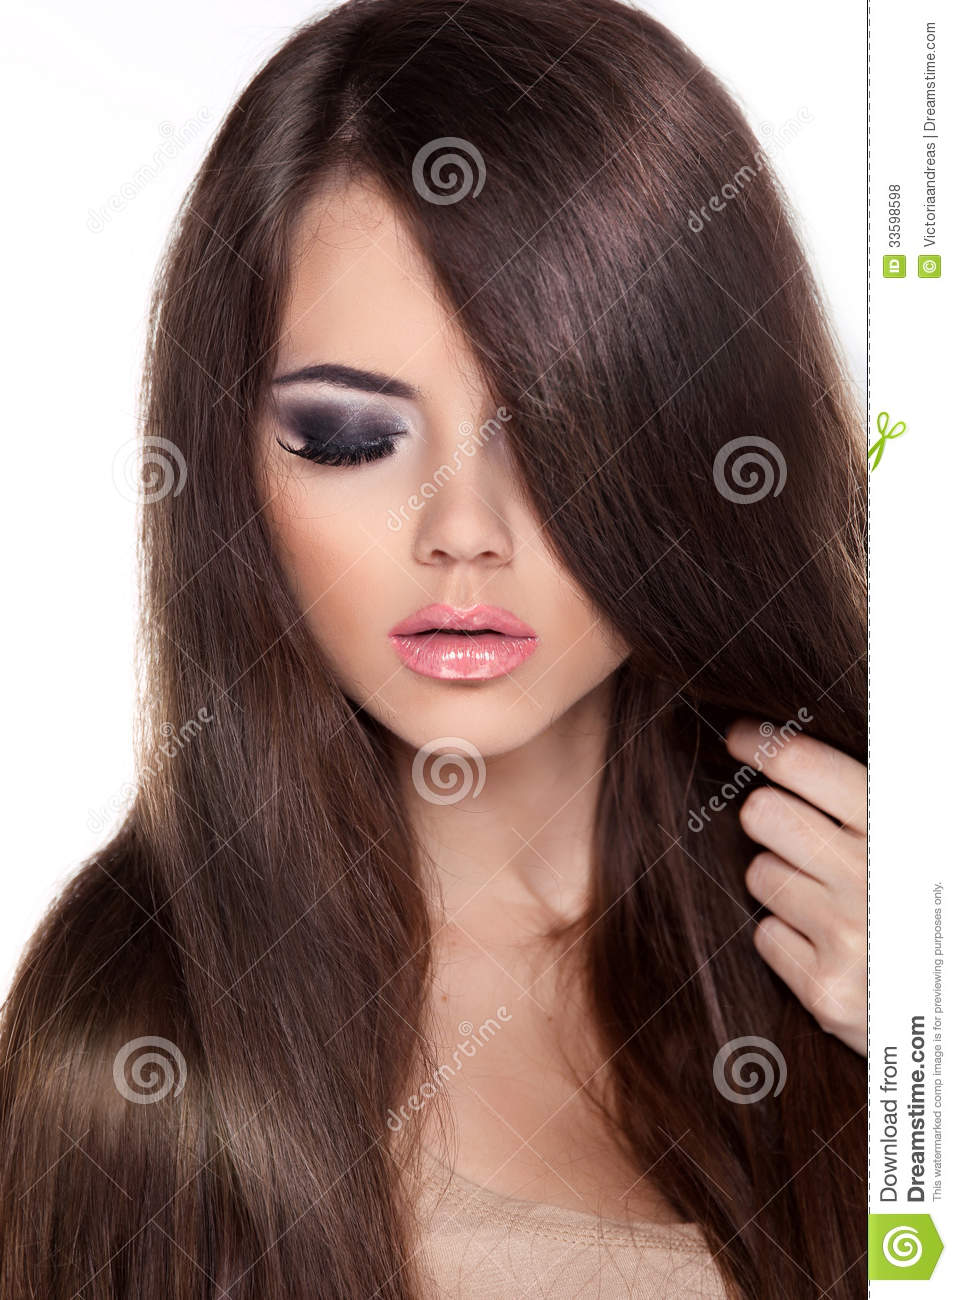 Beauty Brown Hair Woman With Smile On Her Face Royalty: Fashion Model Woman With Long Healthy Brown Hair. Beauty